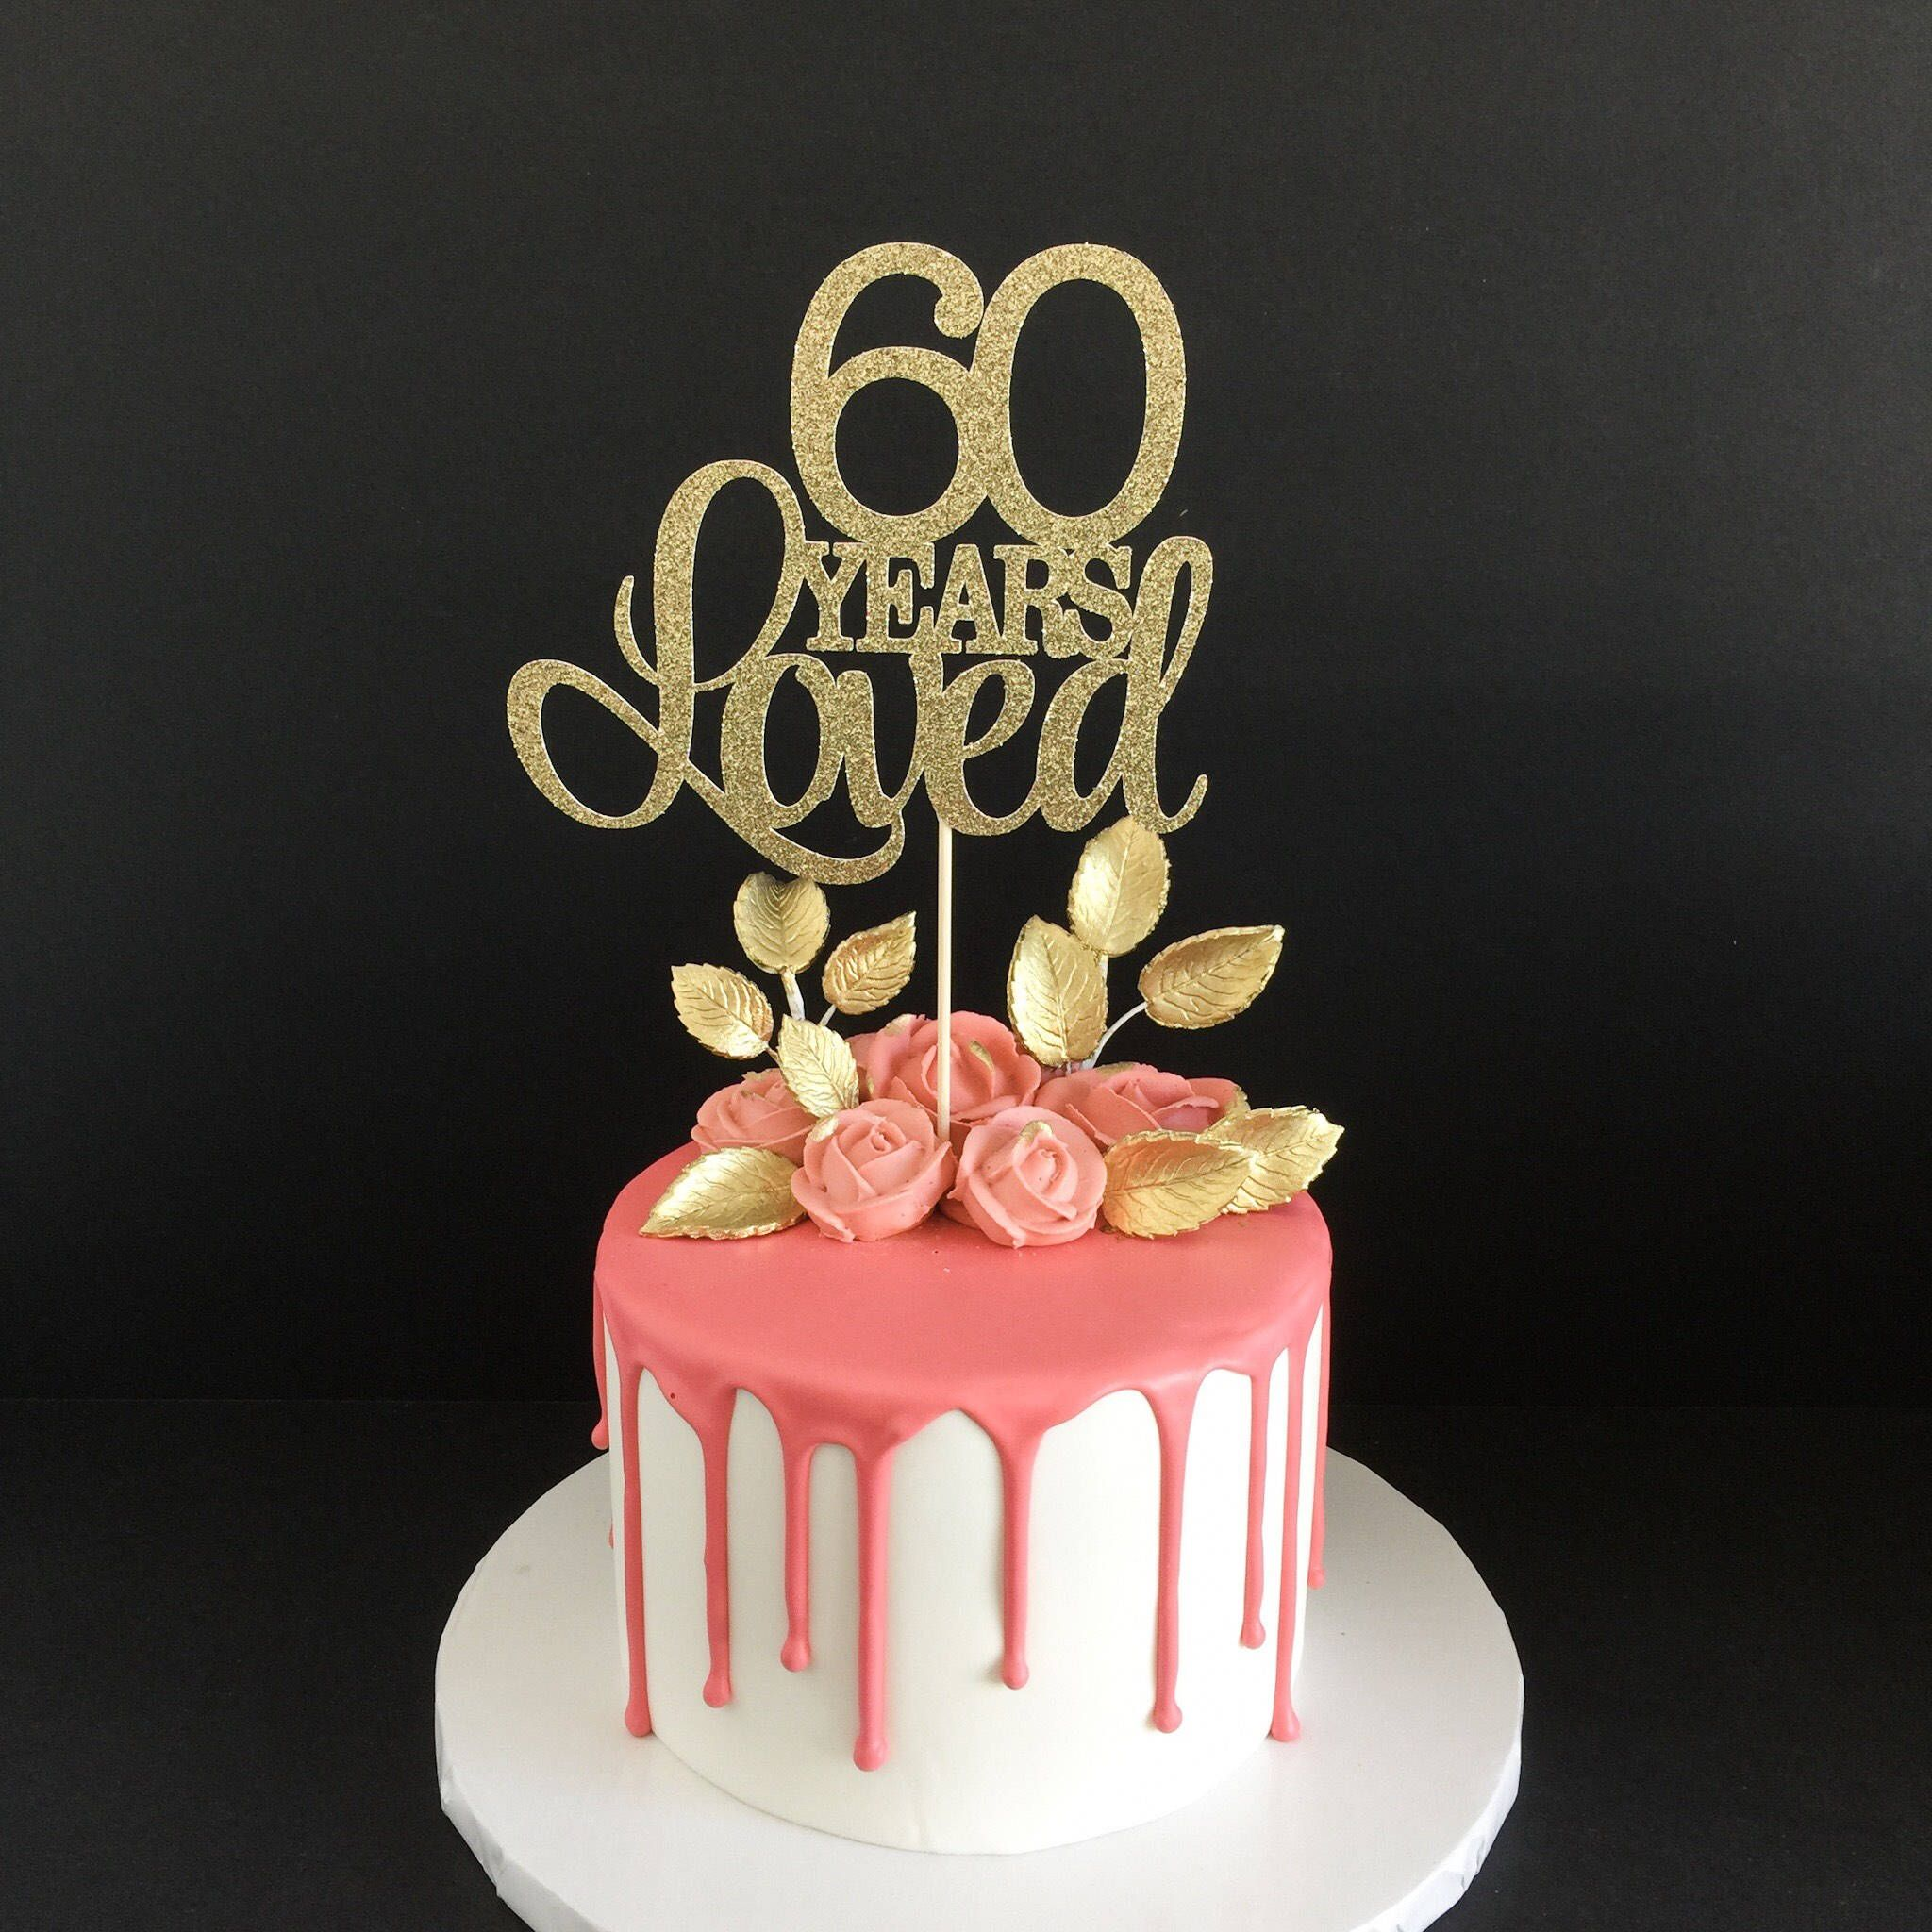 Phenomenal 60 Years Loved Cake Topper 60Th Birthday Cake Topper Happy 60Th Funny Birthday Cards Online Fluifree Goldxyz